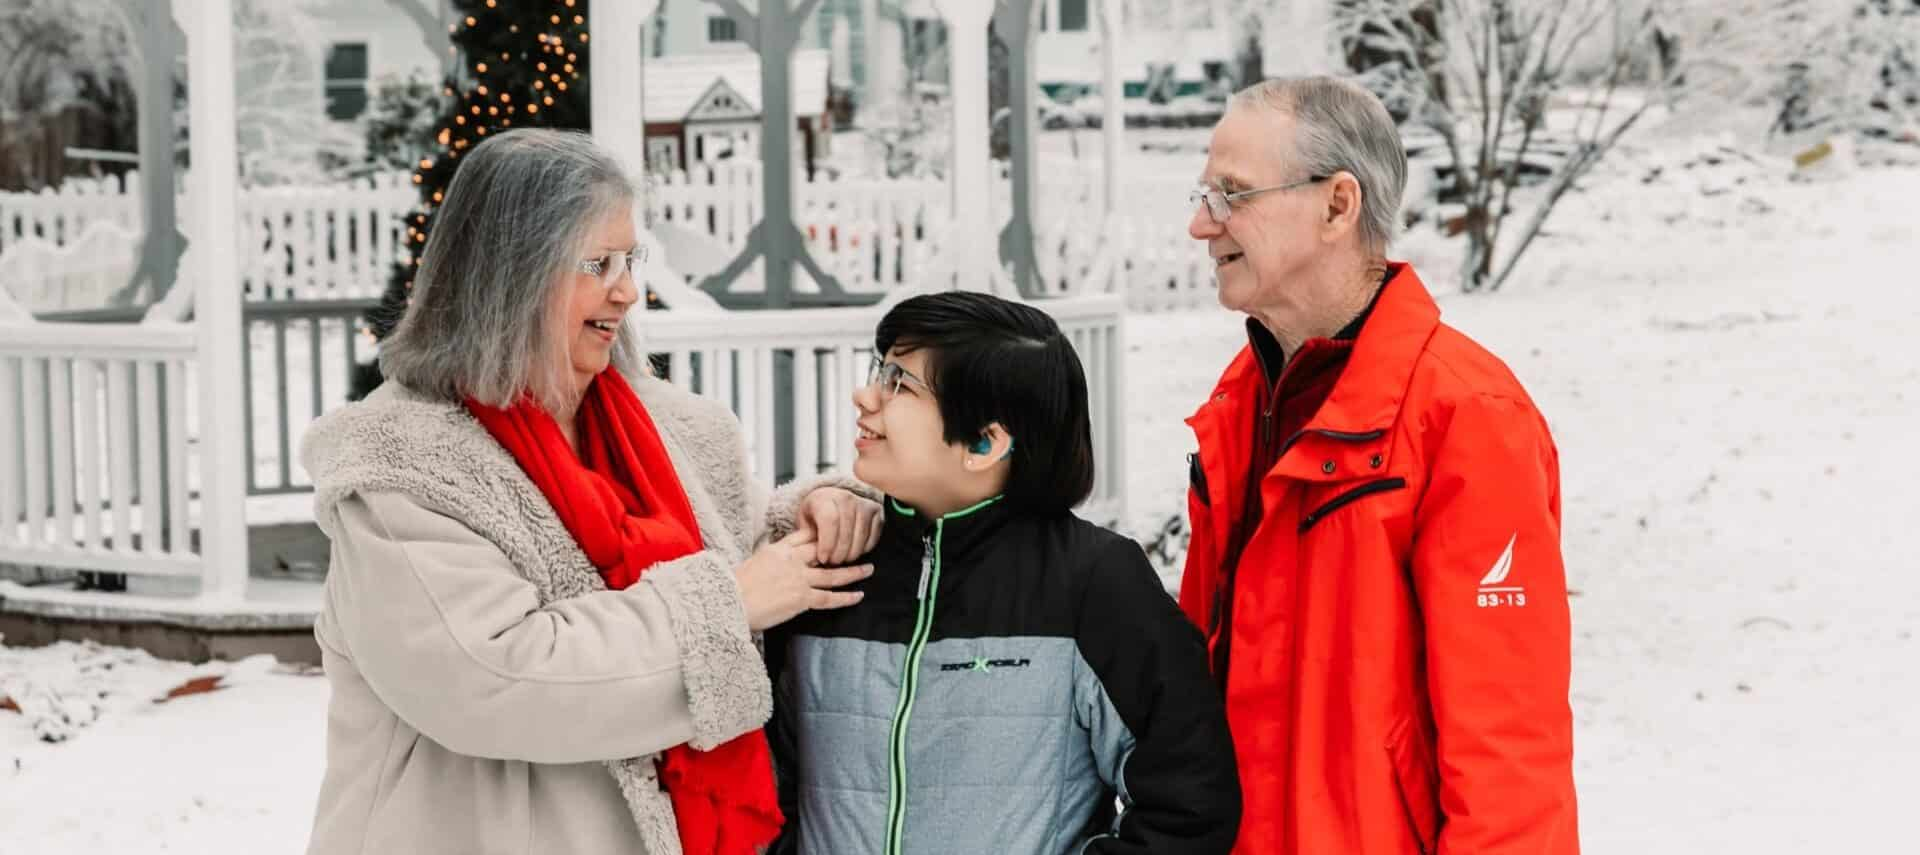 grandparents with grandson in snowy yard